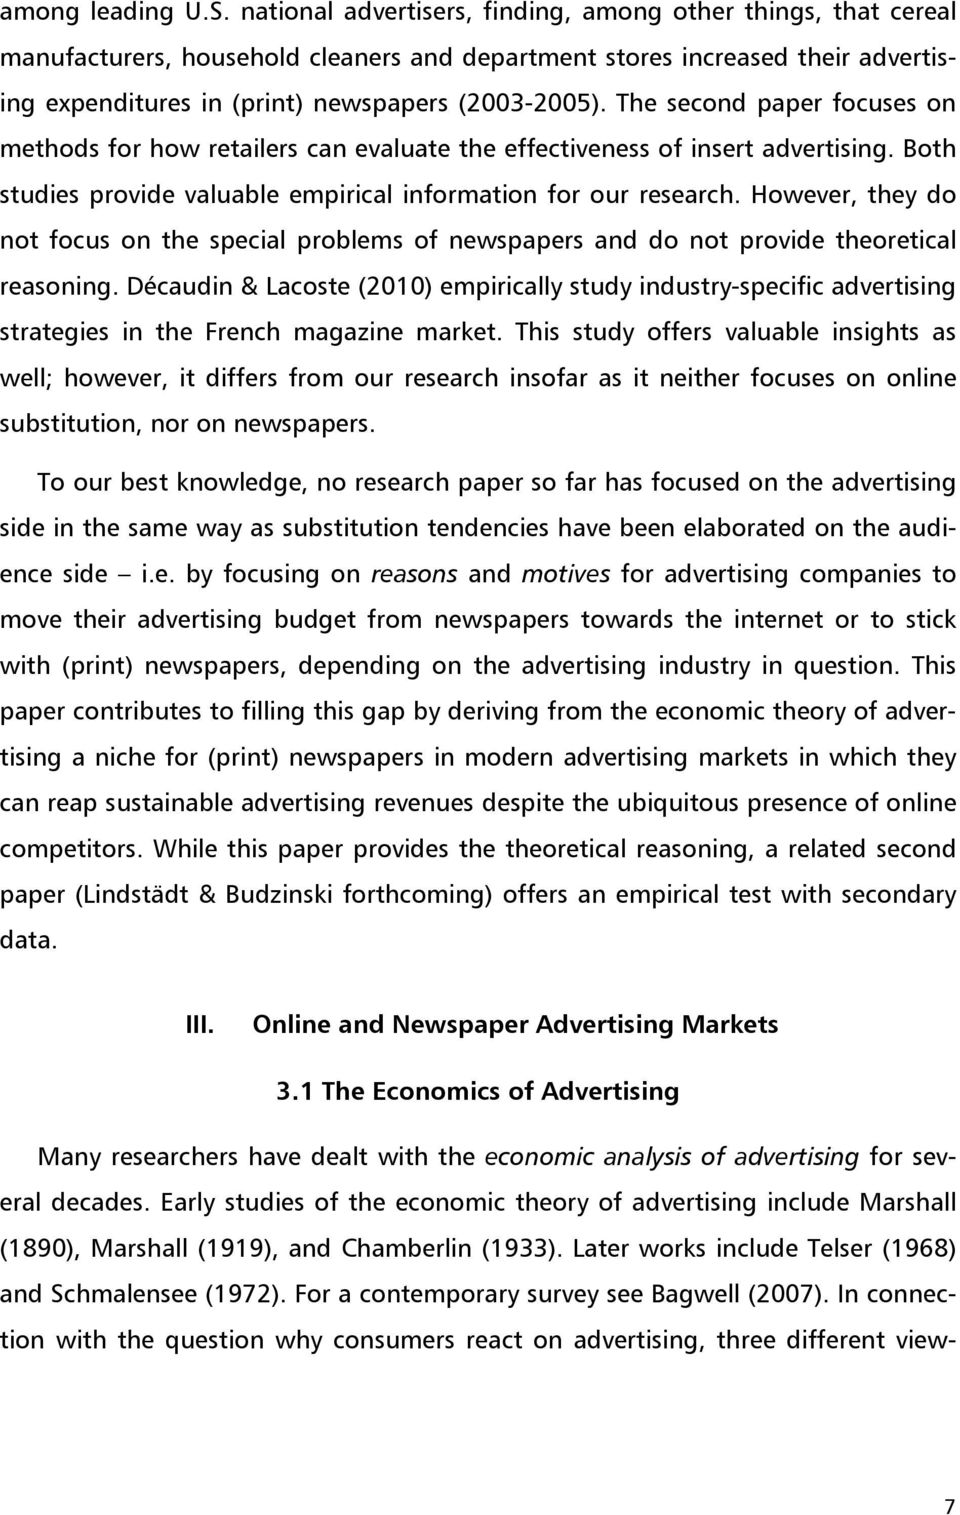 The second paper focuses on methods for how retailers can evaluate the effectiveness of insert advertising. Both studies provide valuable empirical information for our research.